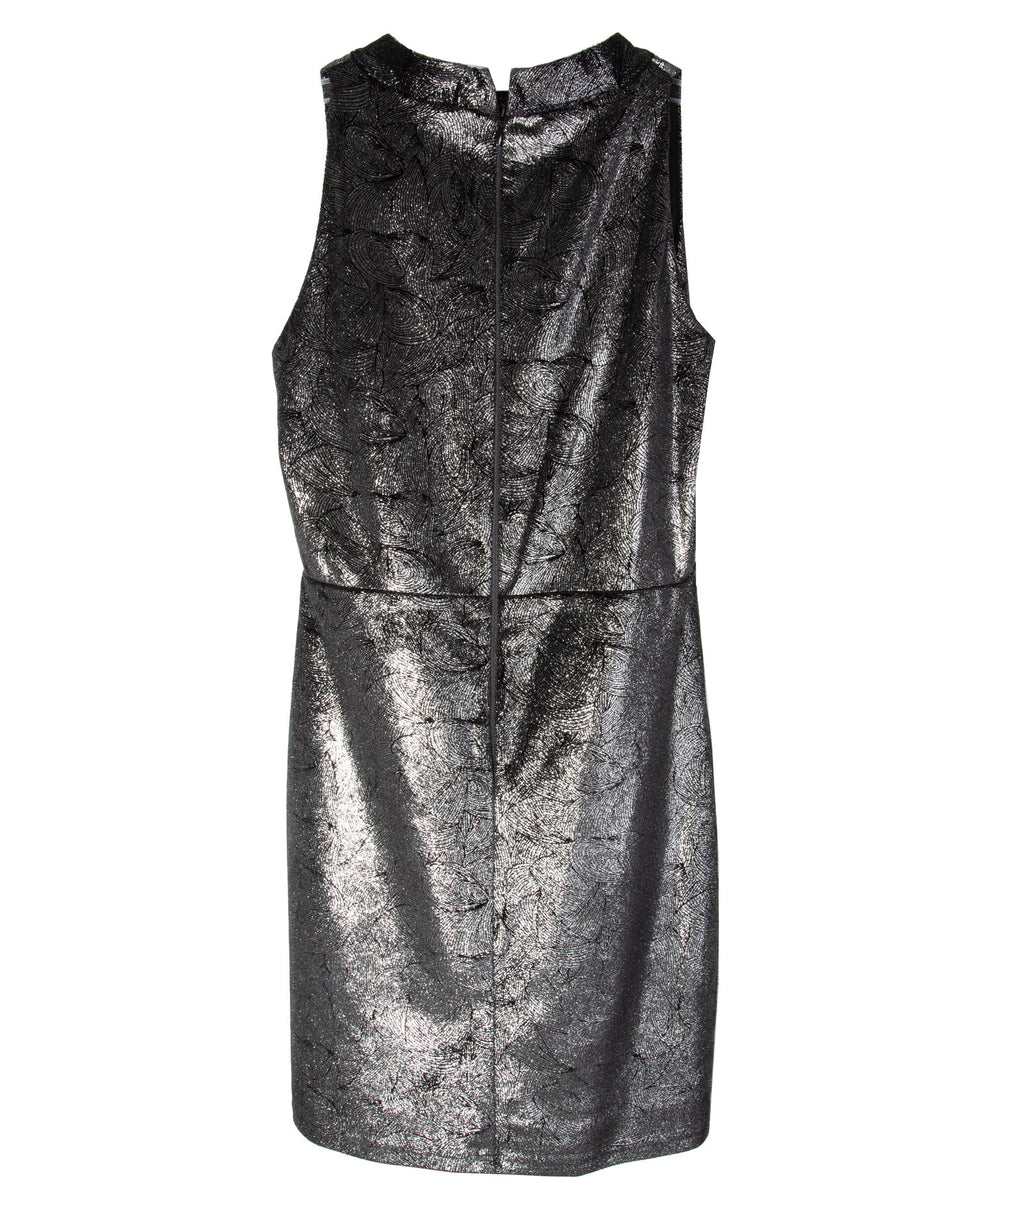 By Debra Girls Silver Straight Dress